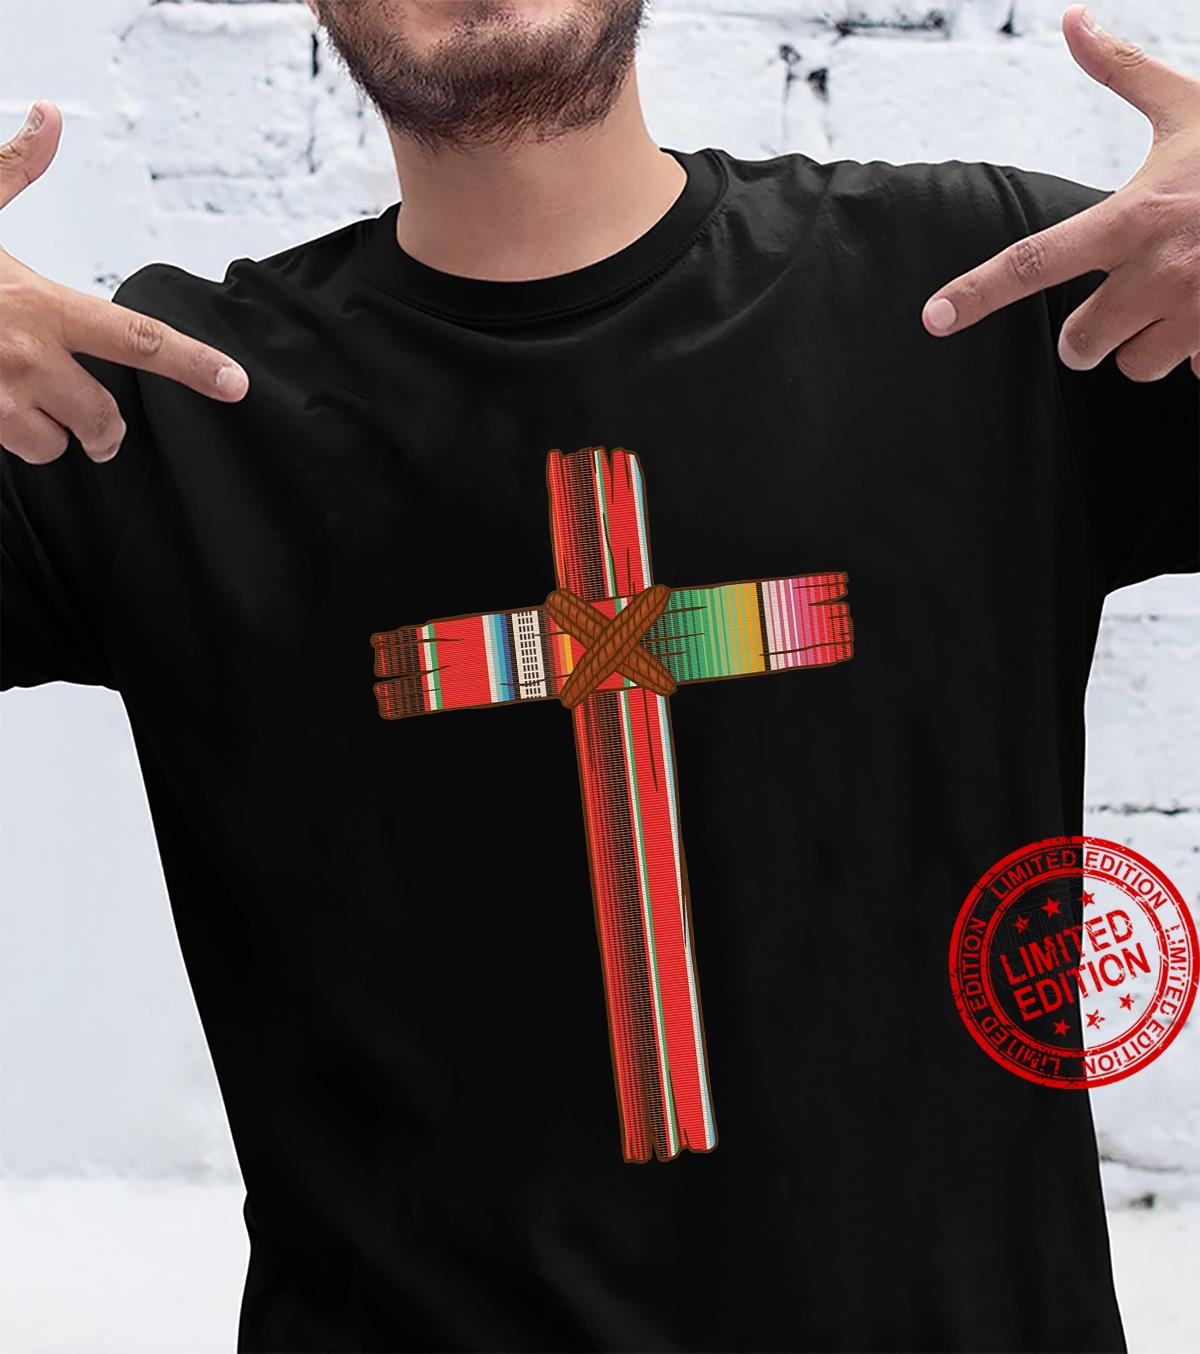 Christian Mexican Inspired Serape Cross Related Tied Rope Cr Shirt